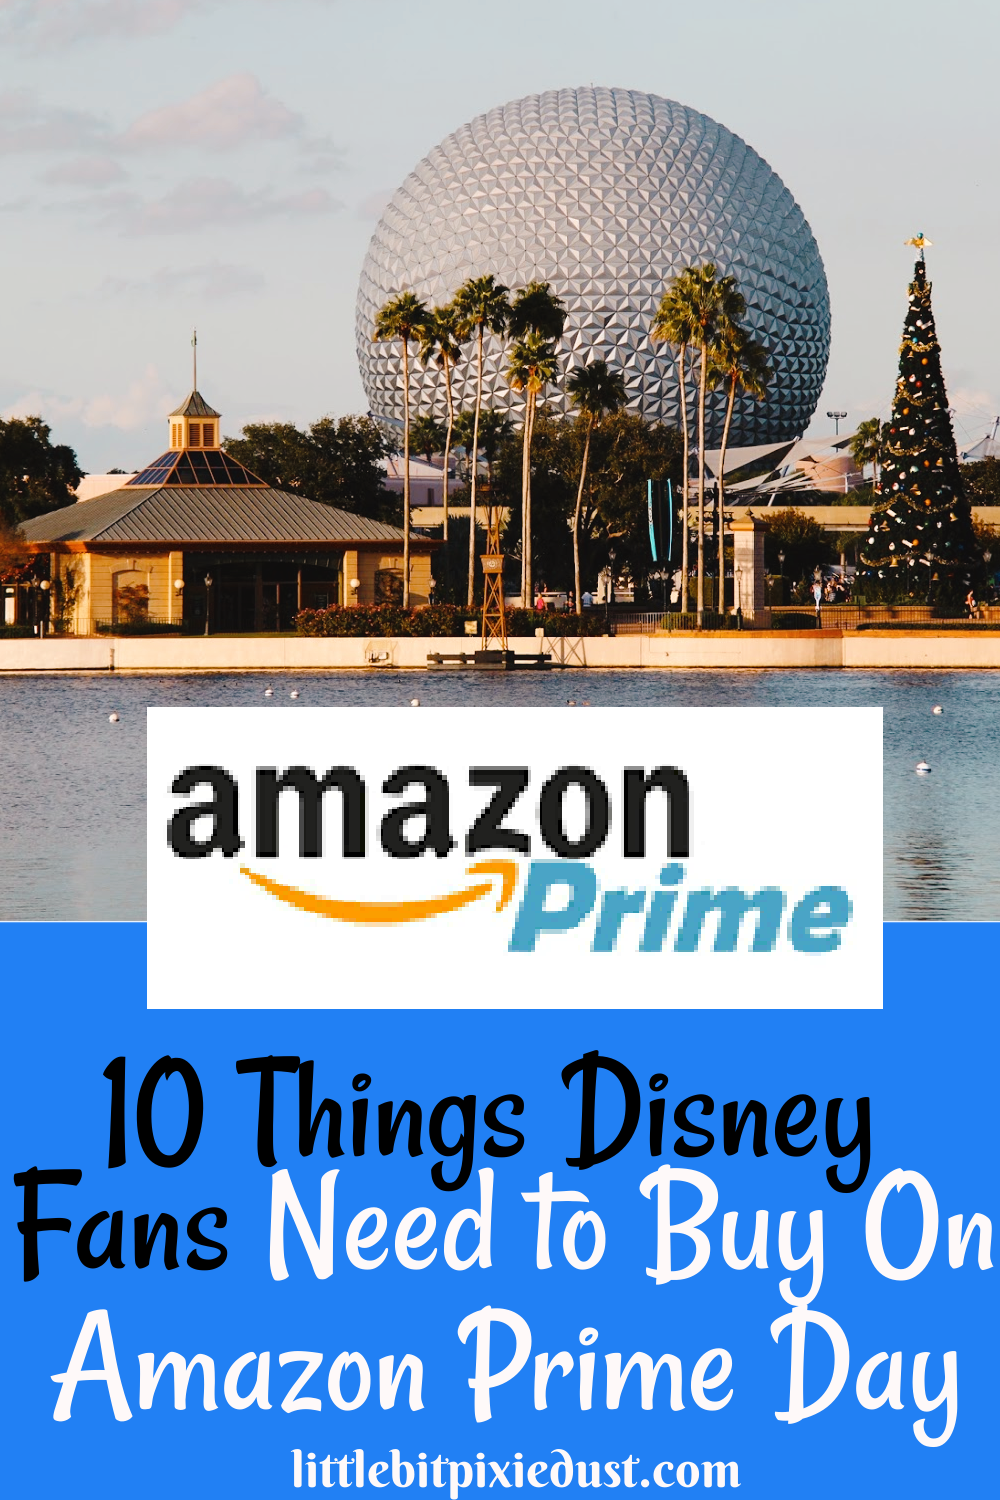 Amazon Prime Day for Disney fans